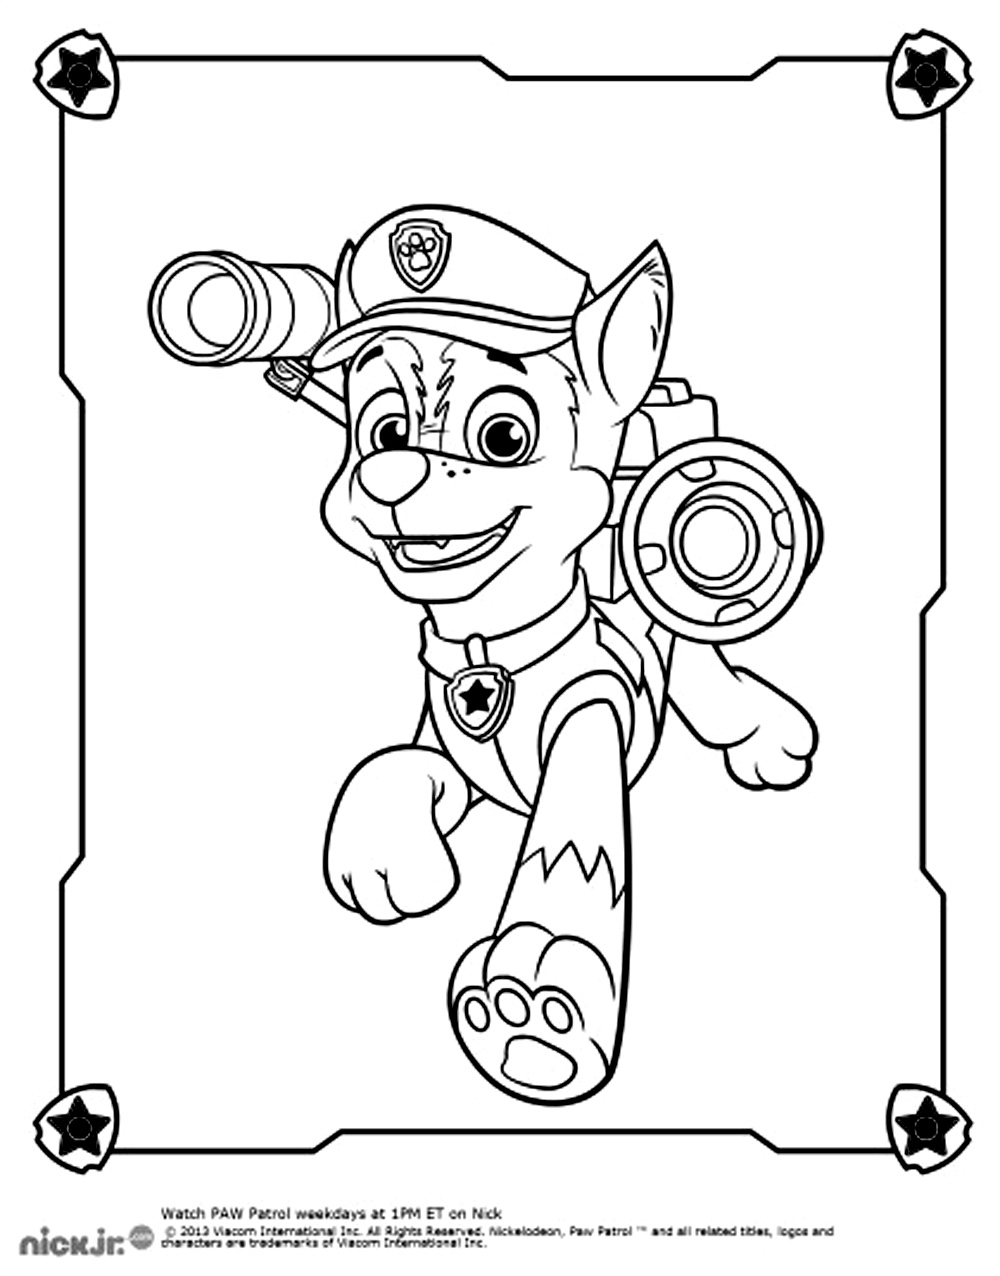 Simple Paw Patrol coloring page for kids